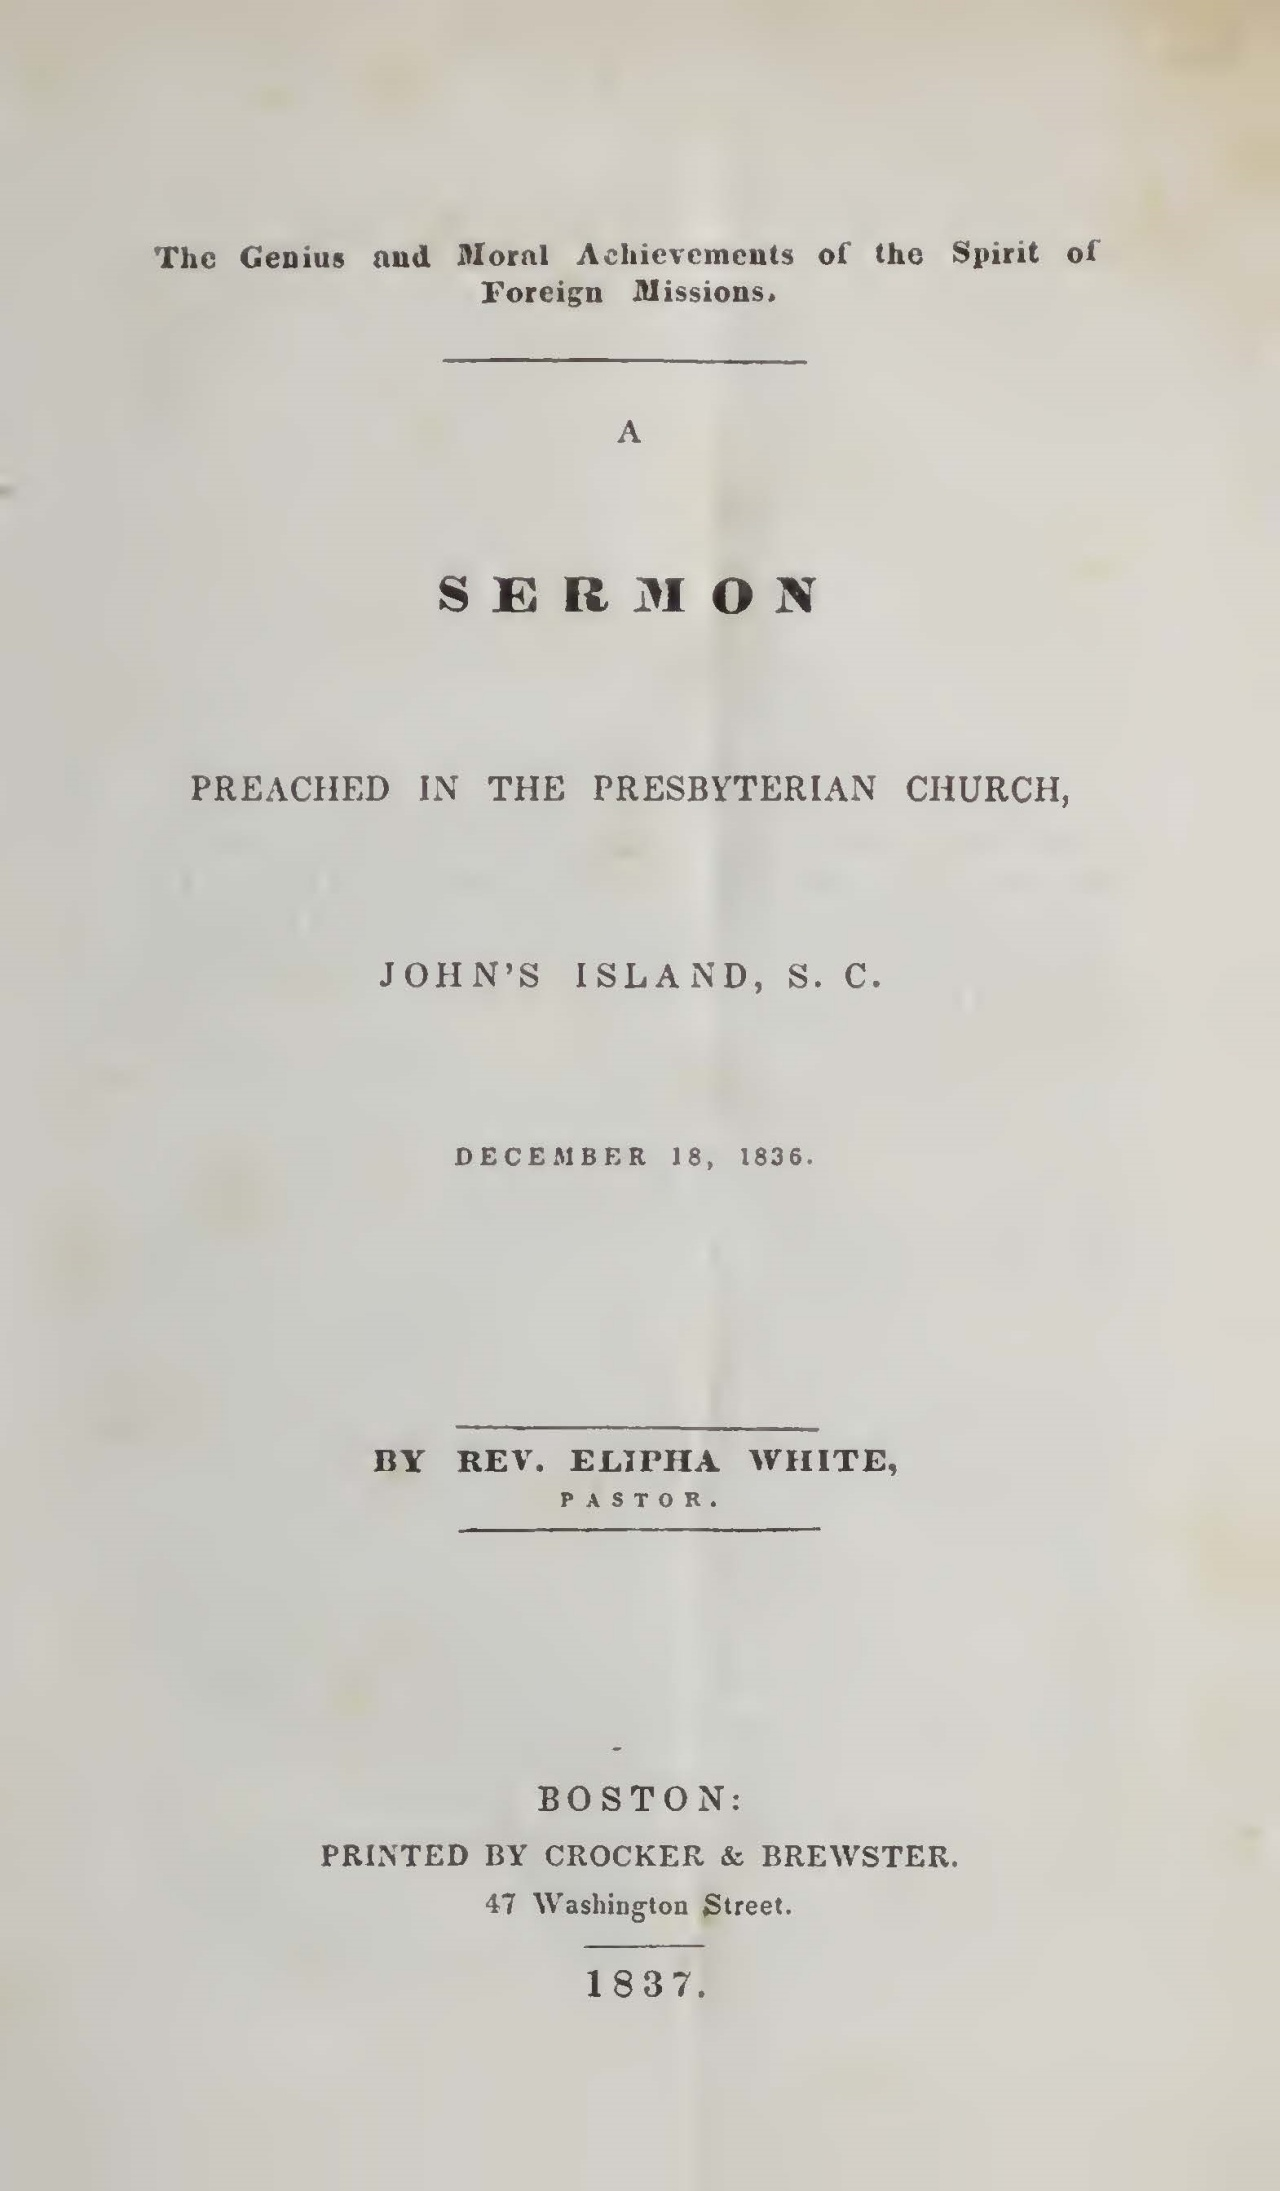 White, Elipha, A Sermon Preached in the Presbyterian Church Title Page.jpg